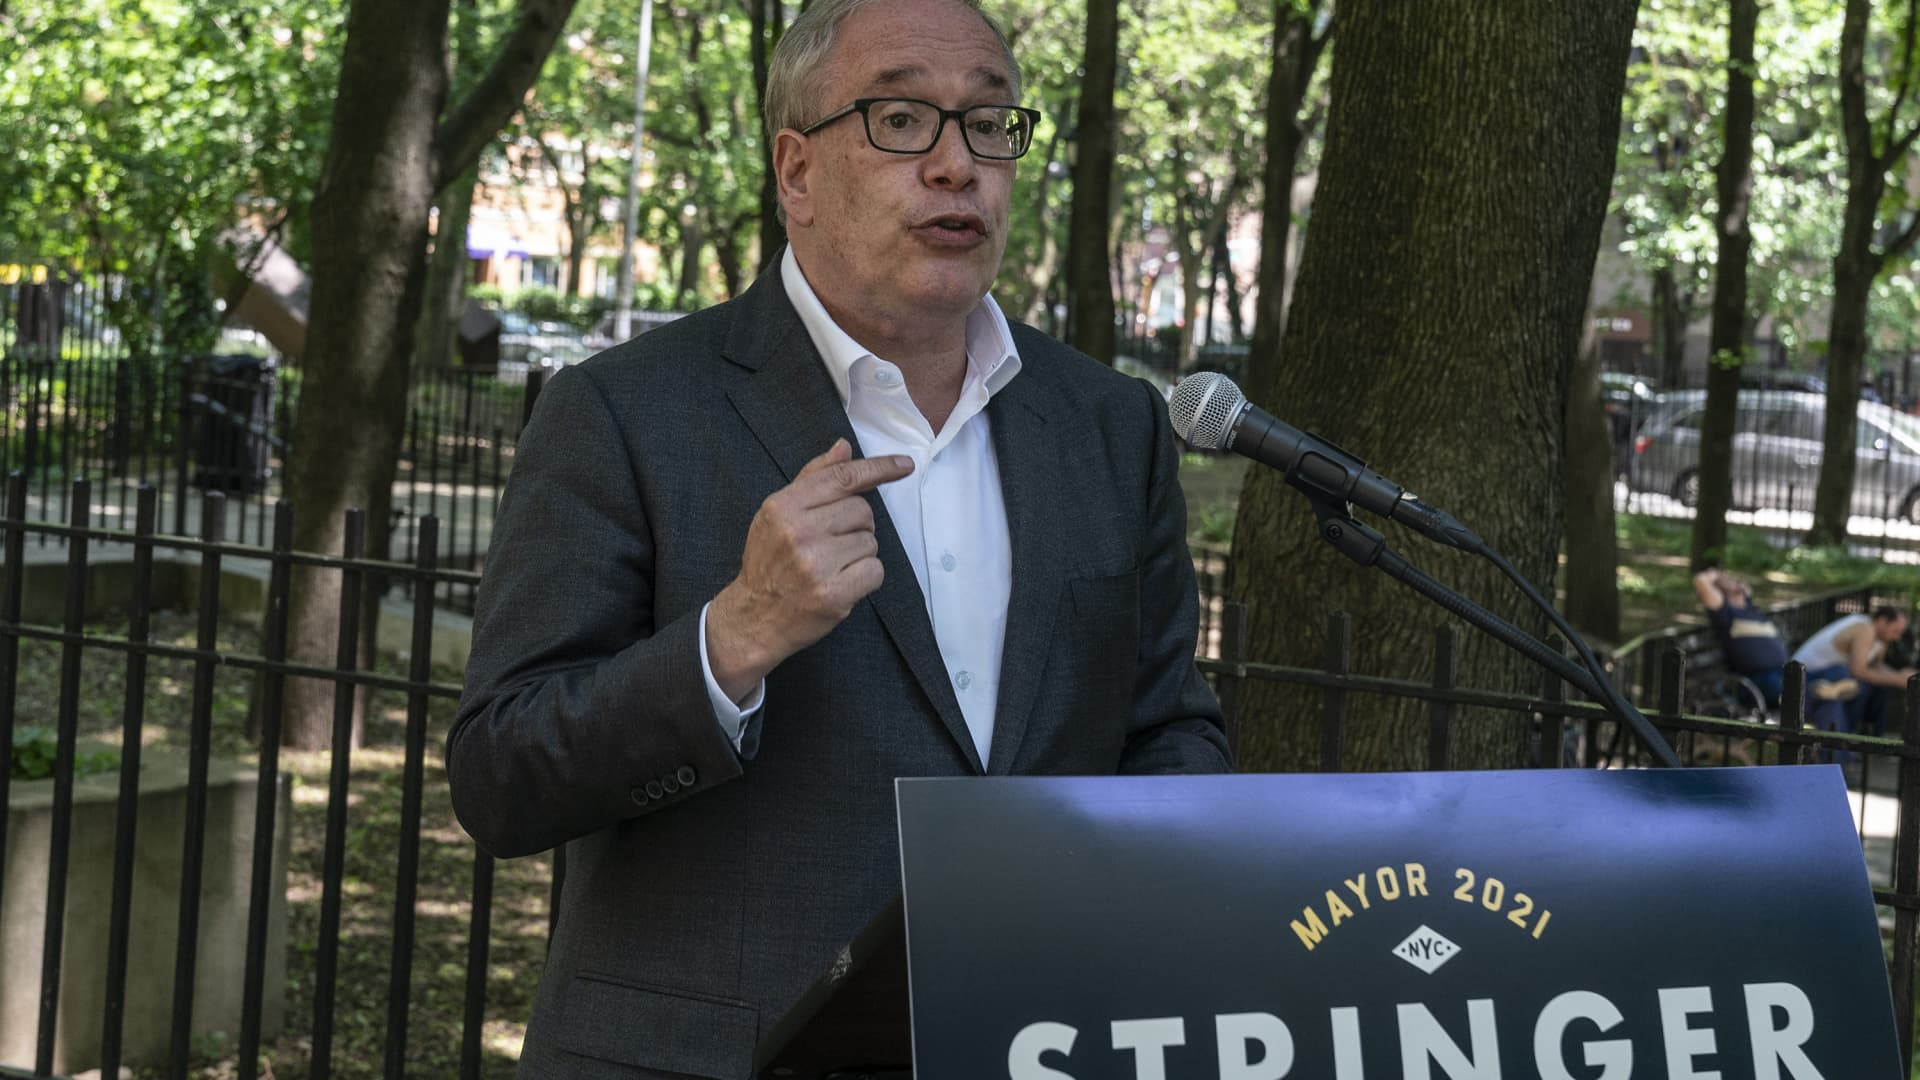 City Comptroller and Mayoral candidate Scott Stringer made a proposal to install portable public restrooms in all parks and playgrounds at Bellevue South Park.